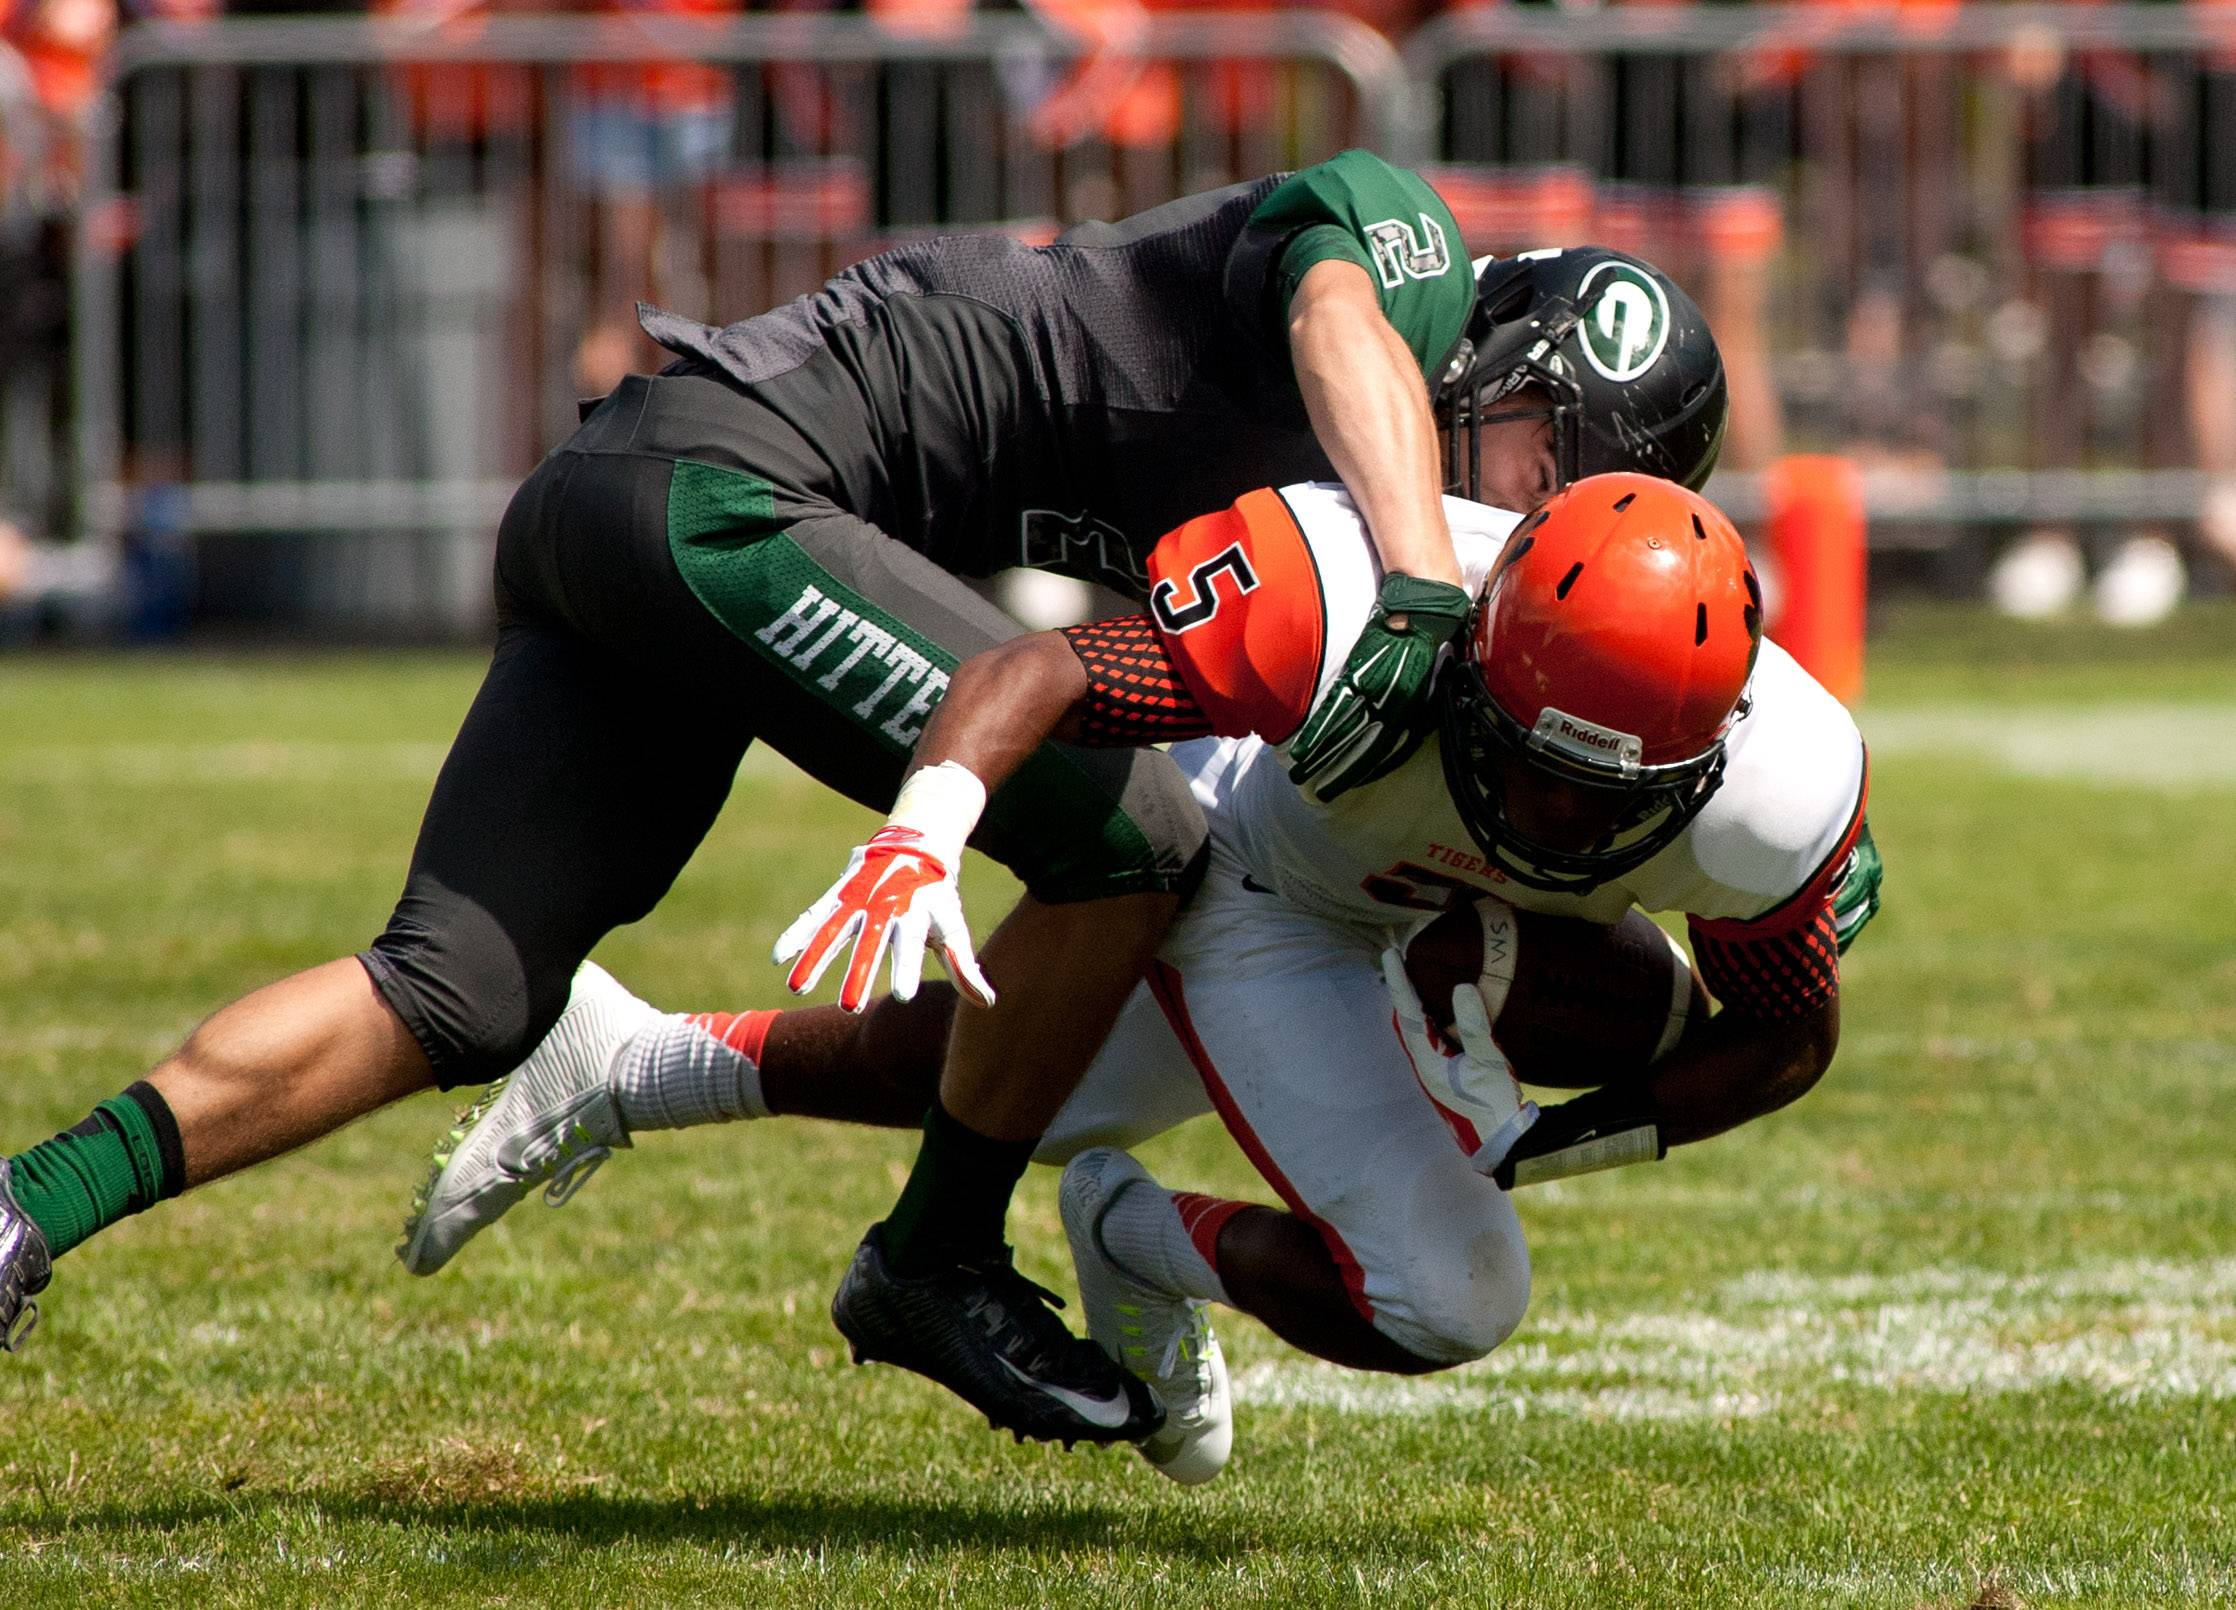 Daniel White/dwhite@dailyherald.comGlenbard West's Ben Marcus wraps up Wheaton Warrenville South's Keishawn Watson.